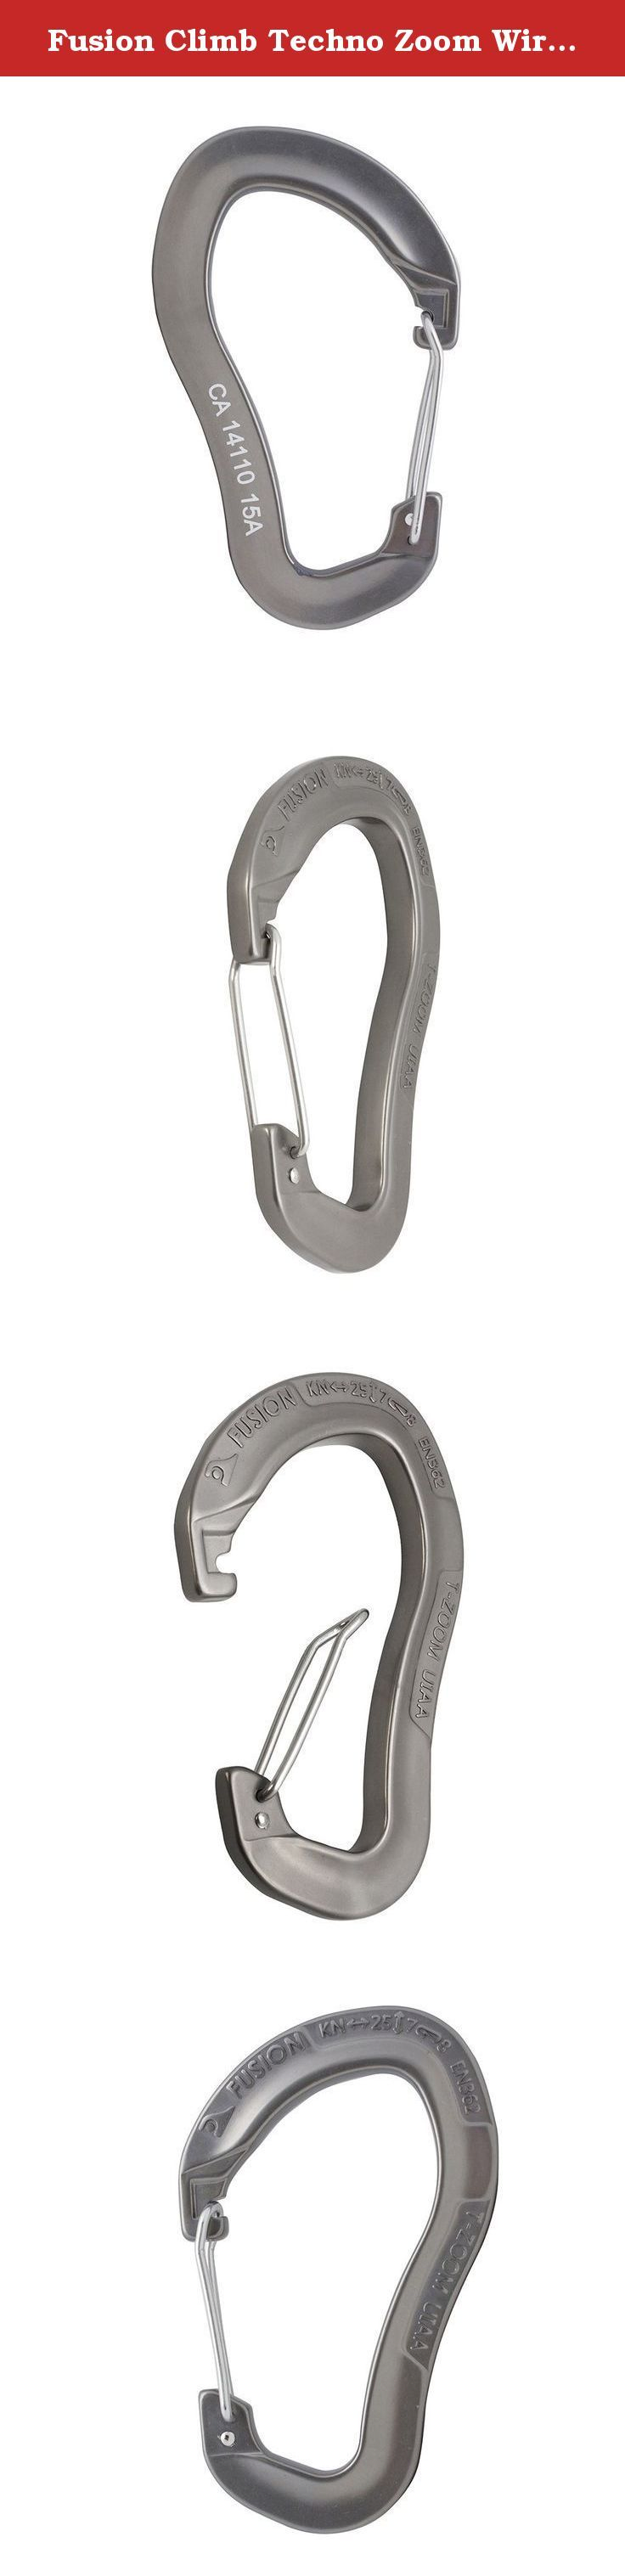 Fusion Climb Techno Zoom Wire Gate Ergonomic Carabiner Gray. Fusion Climb Techno Zoom Wire Gate Ergonomic Carabiner Ultra-light wire gate carabiner weights only 1.5oz. It has a cold forged contoured ergonomic body with a wire gate which provides easy handling and smooth clipping. Ideal for sport racks or any application where weight matters. This key-nose, ultra-light, wire gate carabiner weights at only 1.5oz and has a strength of 25KN. Various Colors .